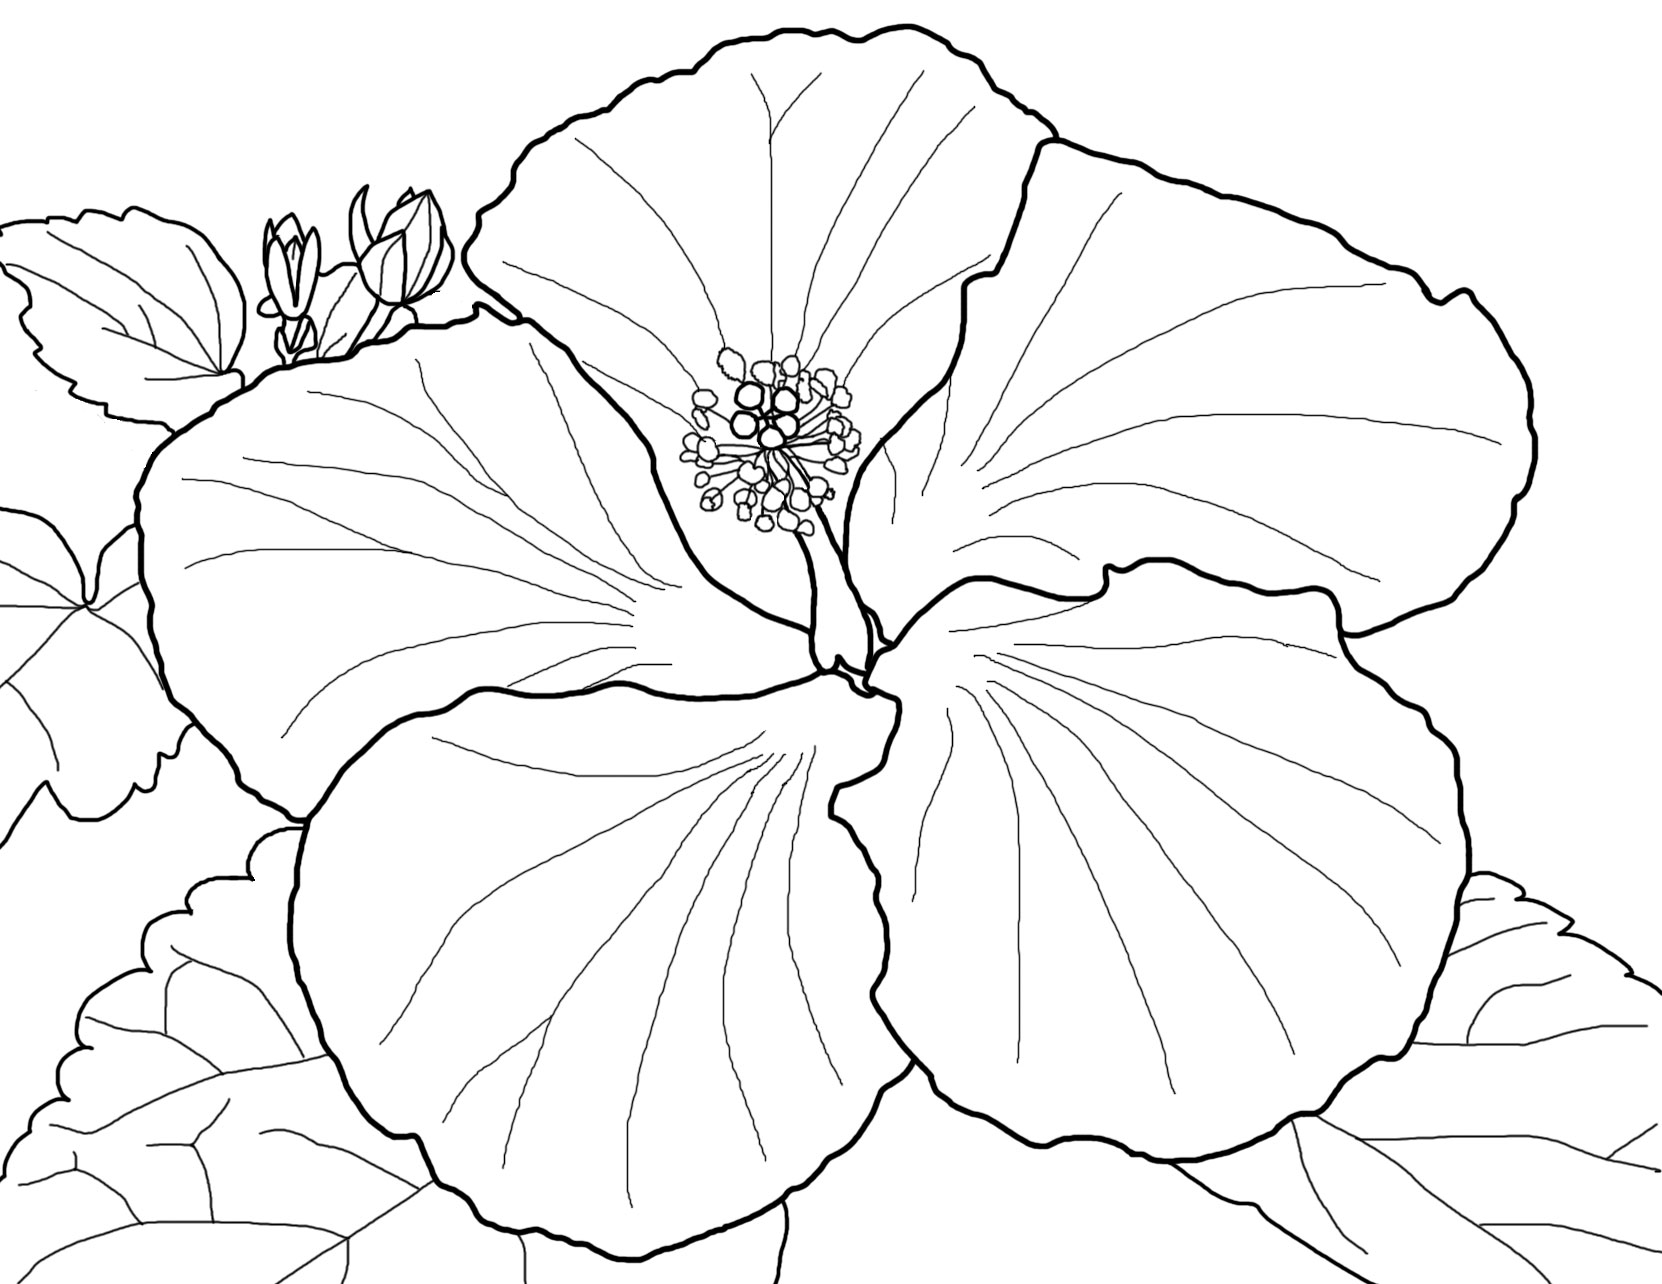 parts of a flower simple diagram power wheels 12v wiring beautiful red hibiscus colouring pages - picolour